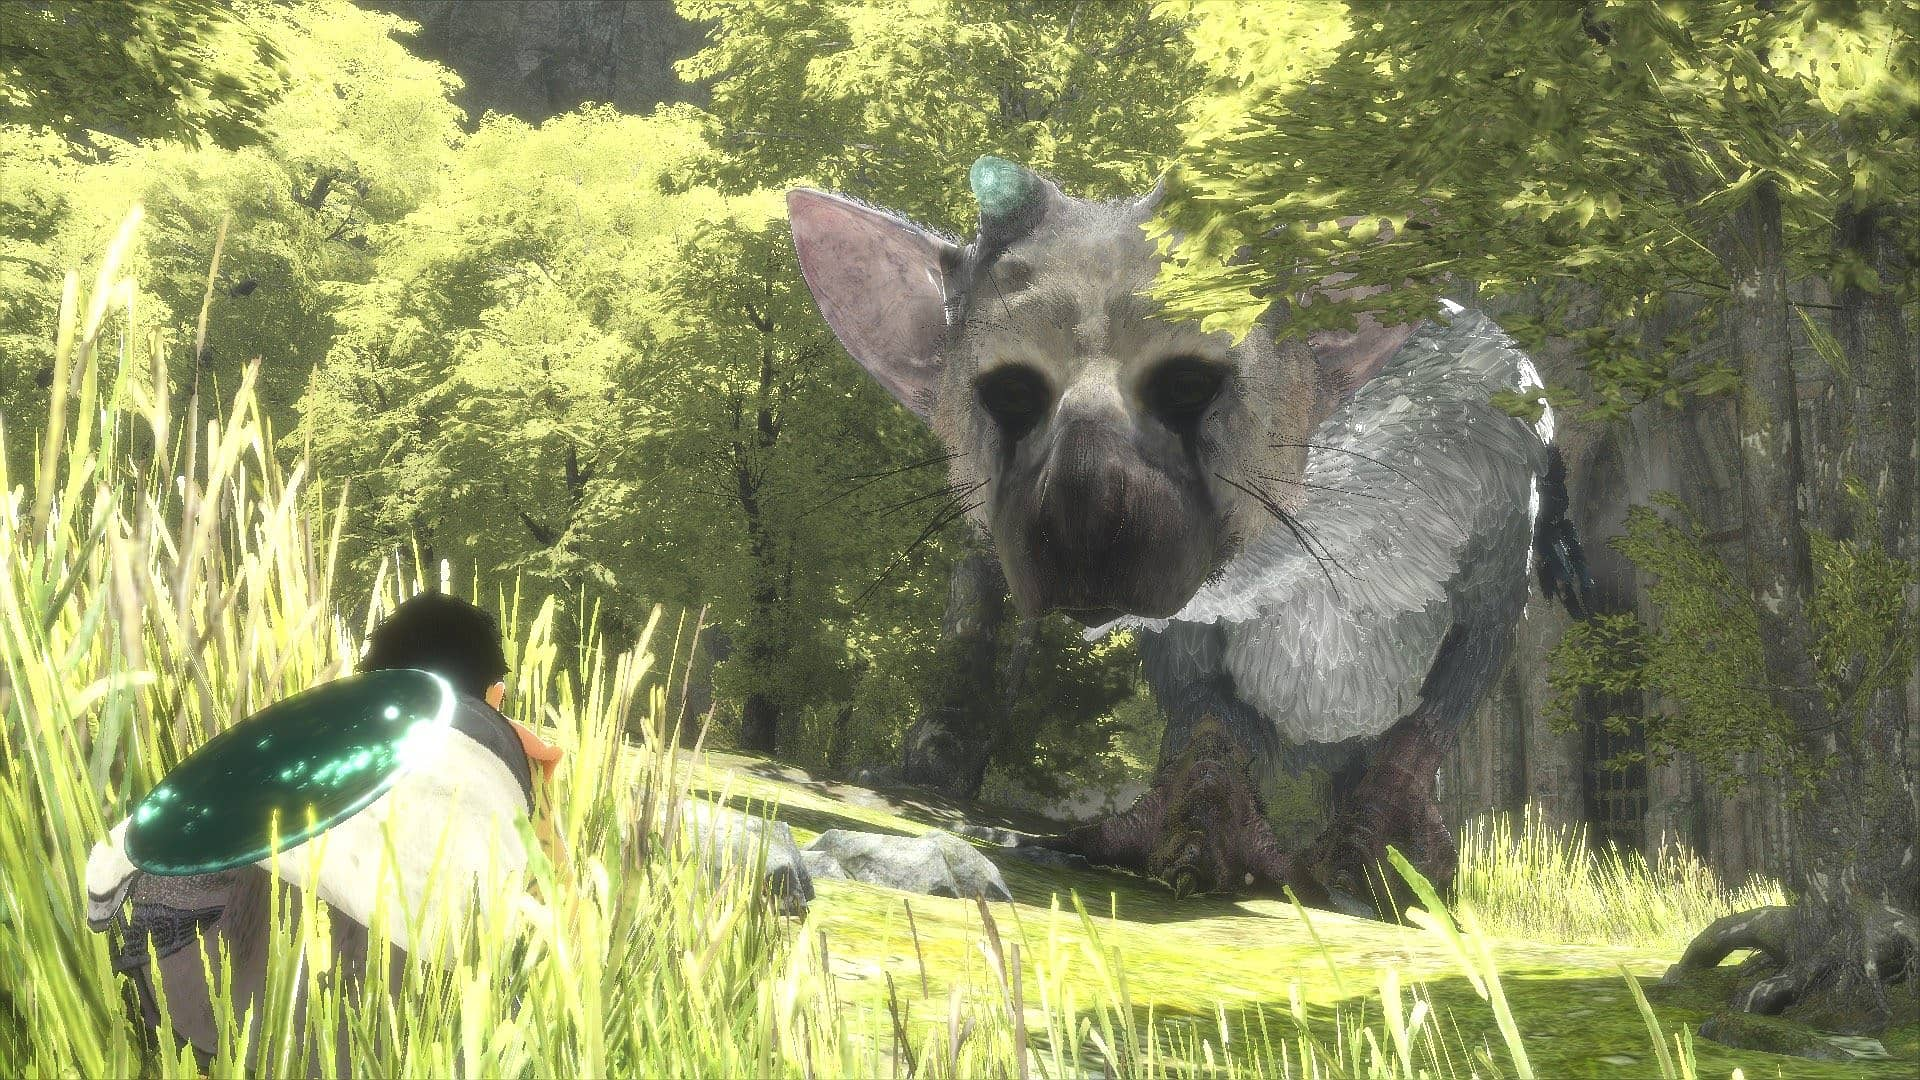 The Last Guardian S Trico Isn T Trying To Be A Jerk The Last